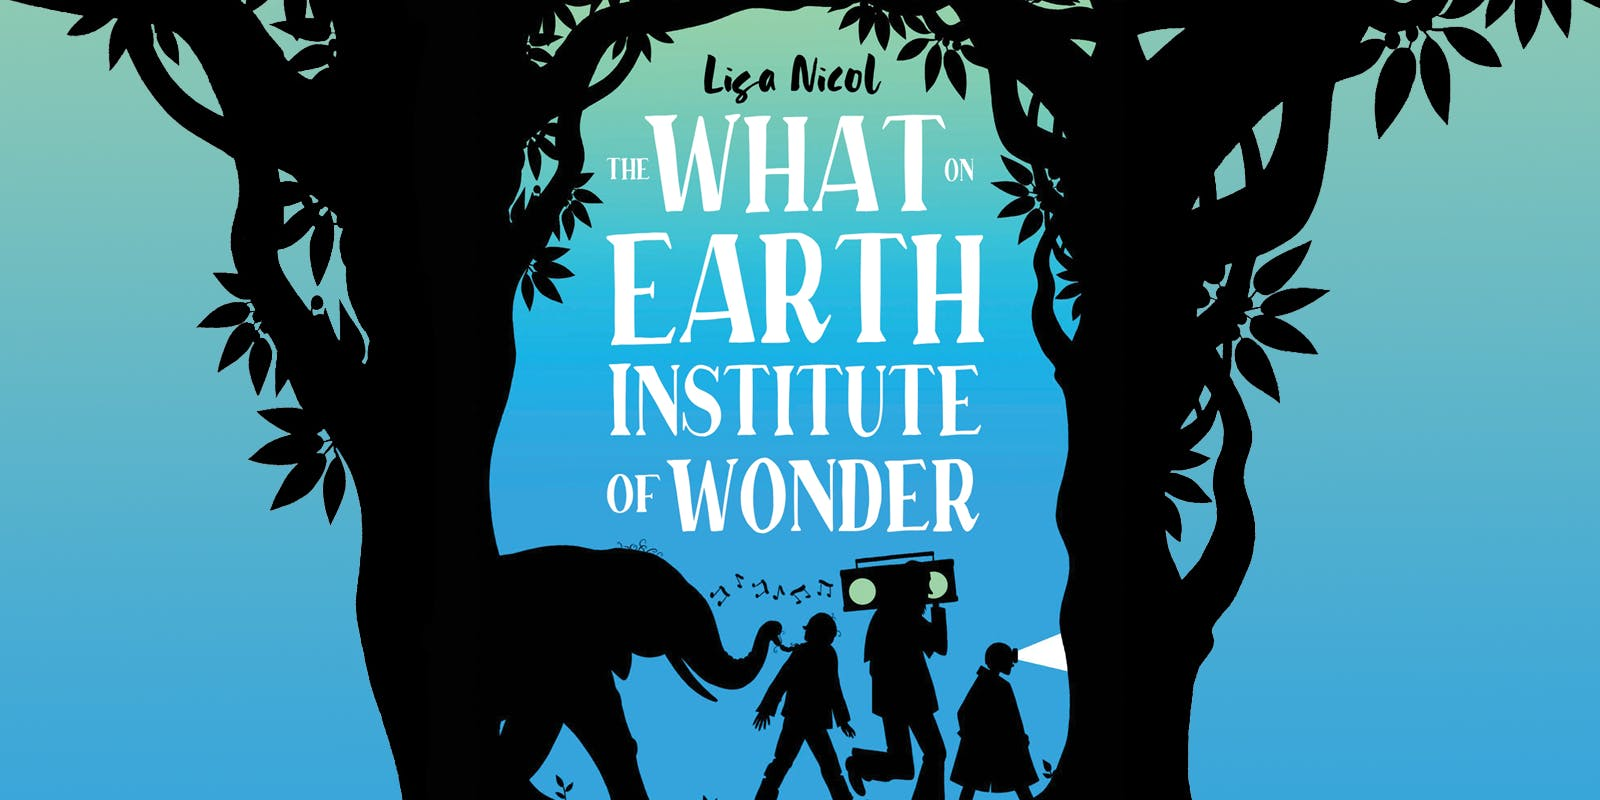 The song behind The What On Earth Institute of Wonder, by Lisa Nicol